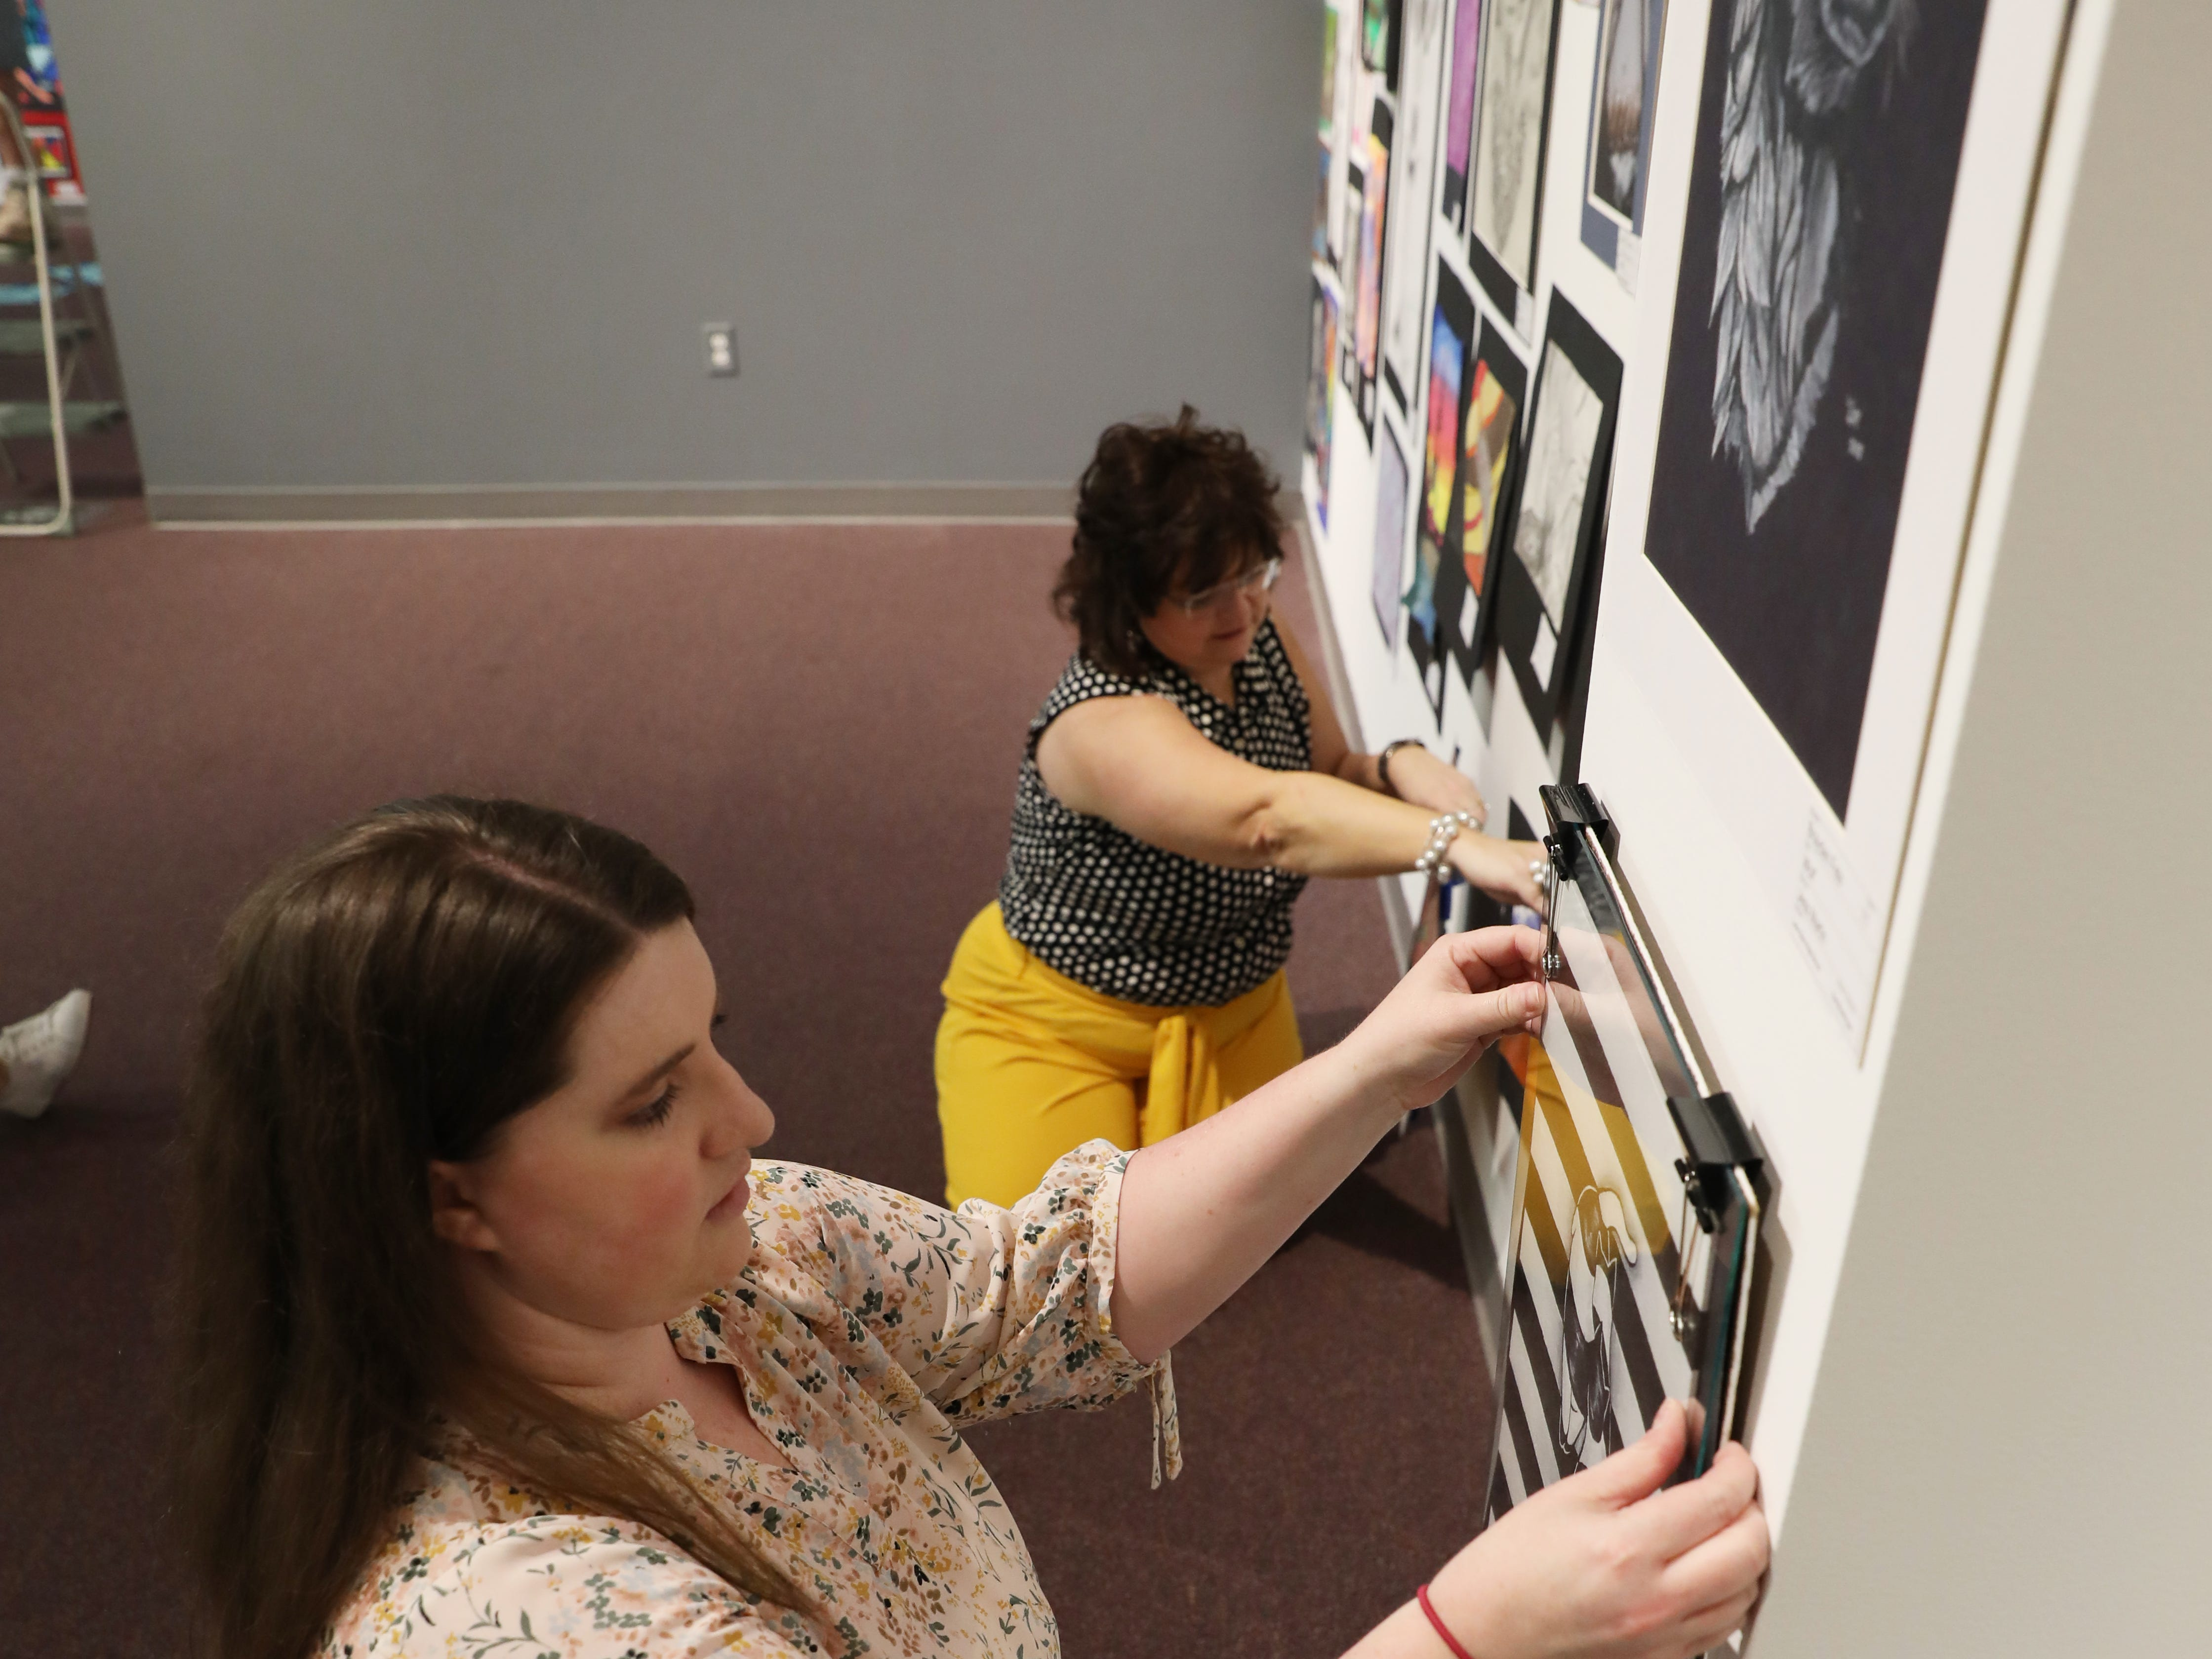 Sarah Franklin, Collections and Exhibitions Manager, and Peggy Gilchrist, a docent, hang art for the Muskingum County K-12 Student Art Exhibition at the Zanesville Museum of Art.